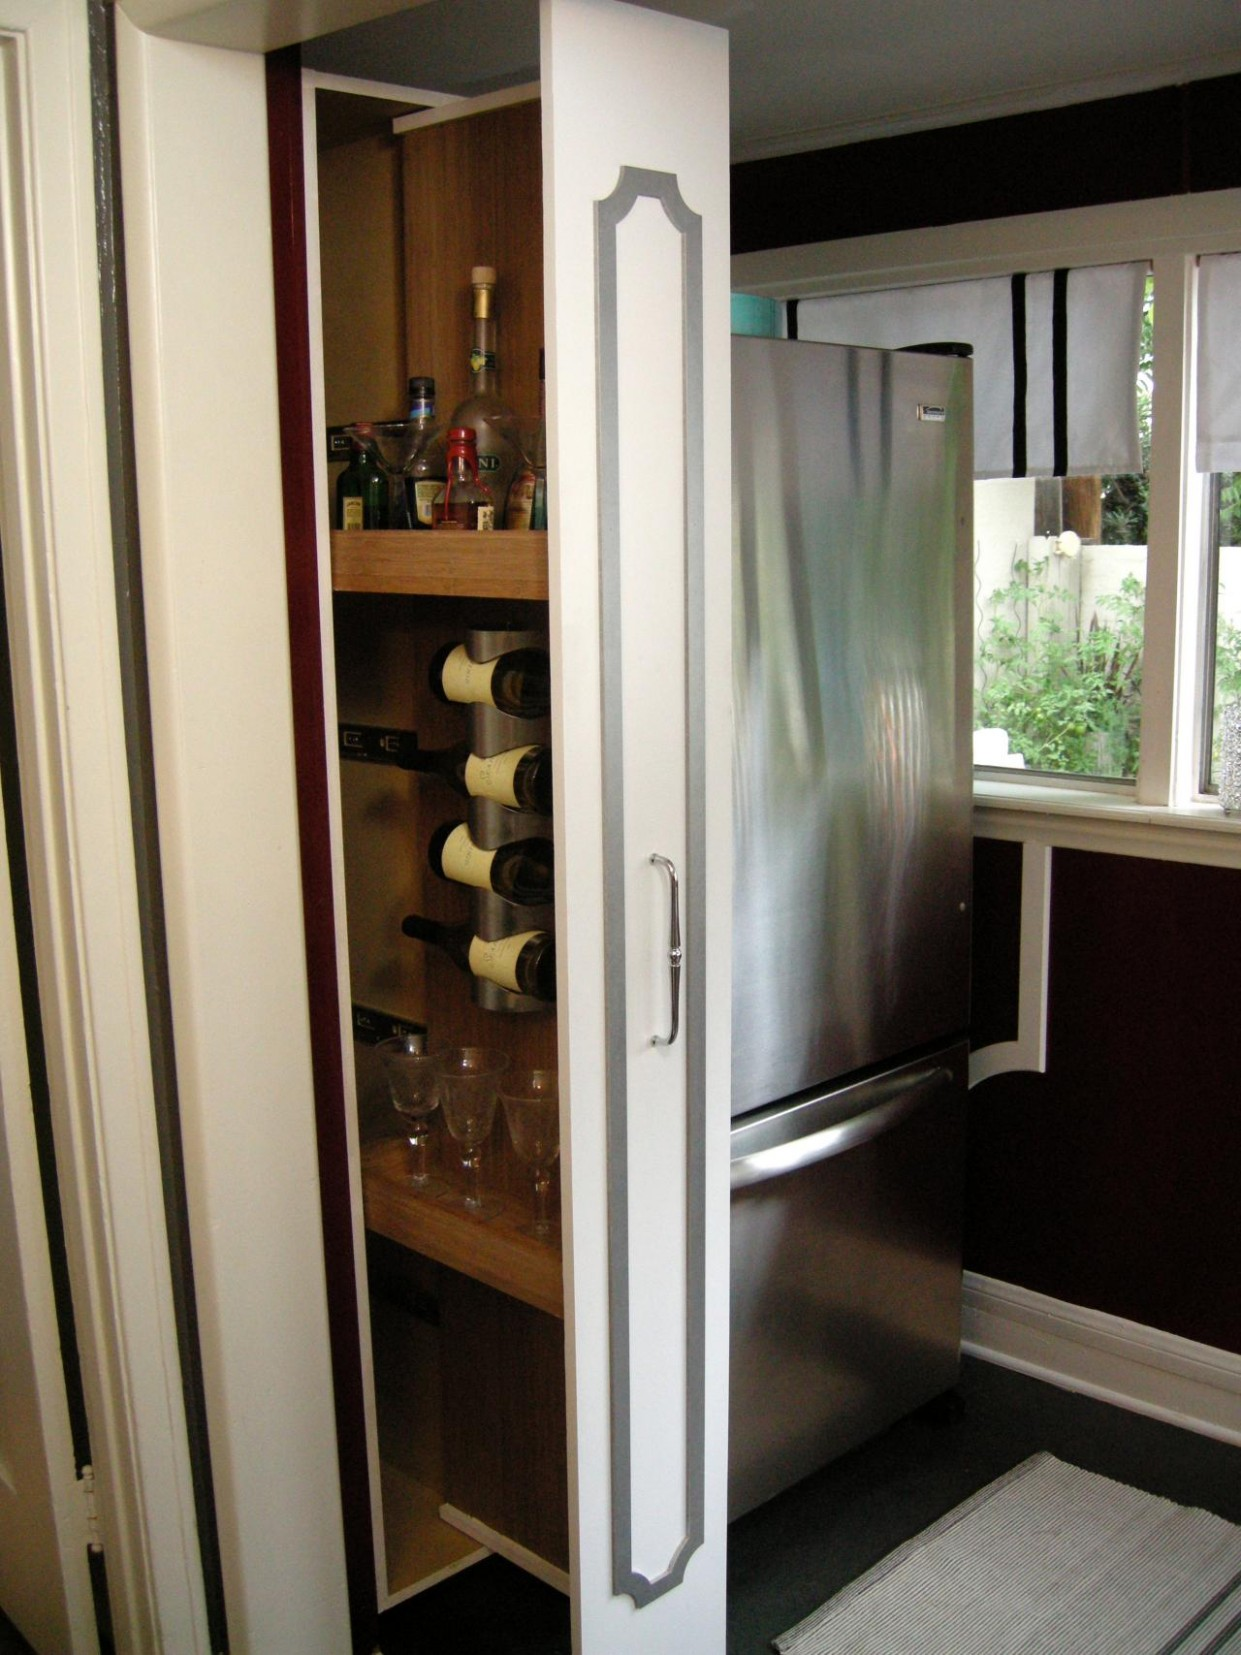 How to Build a Vertical Pull-Out Cabinet  HGTV - What To Do With Skinny Vertical Cabinet Kitchen